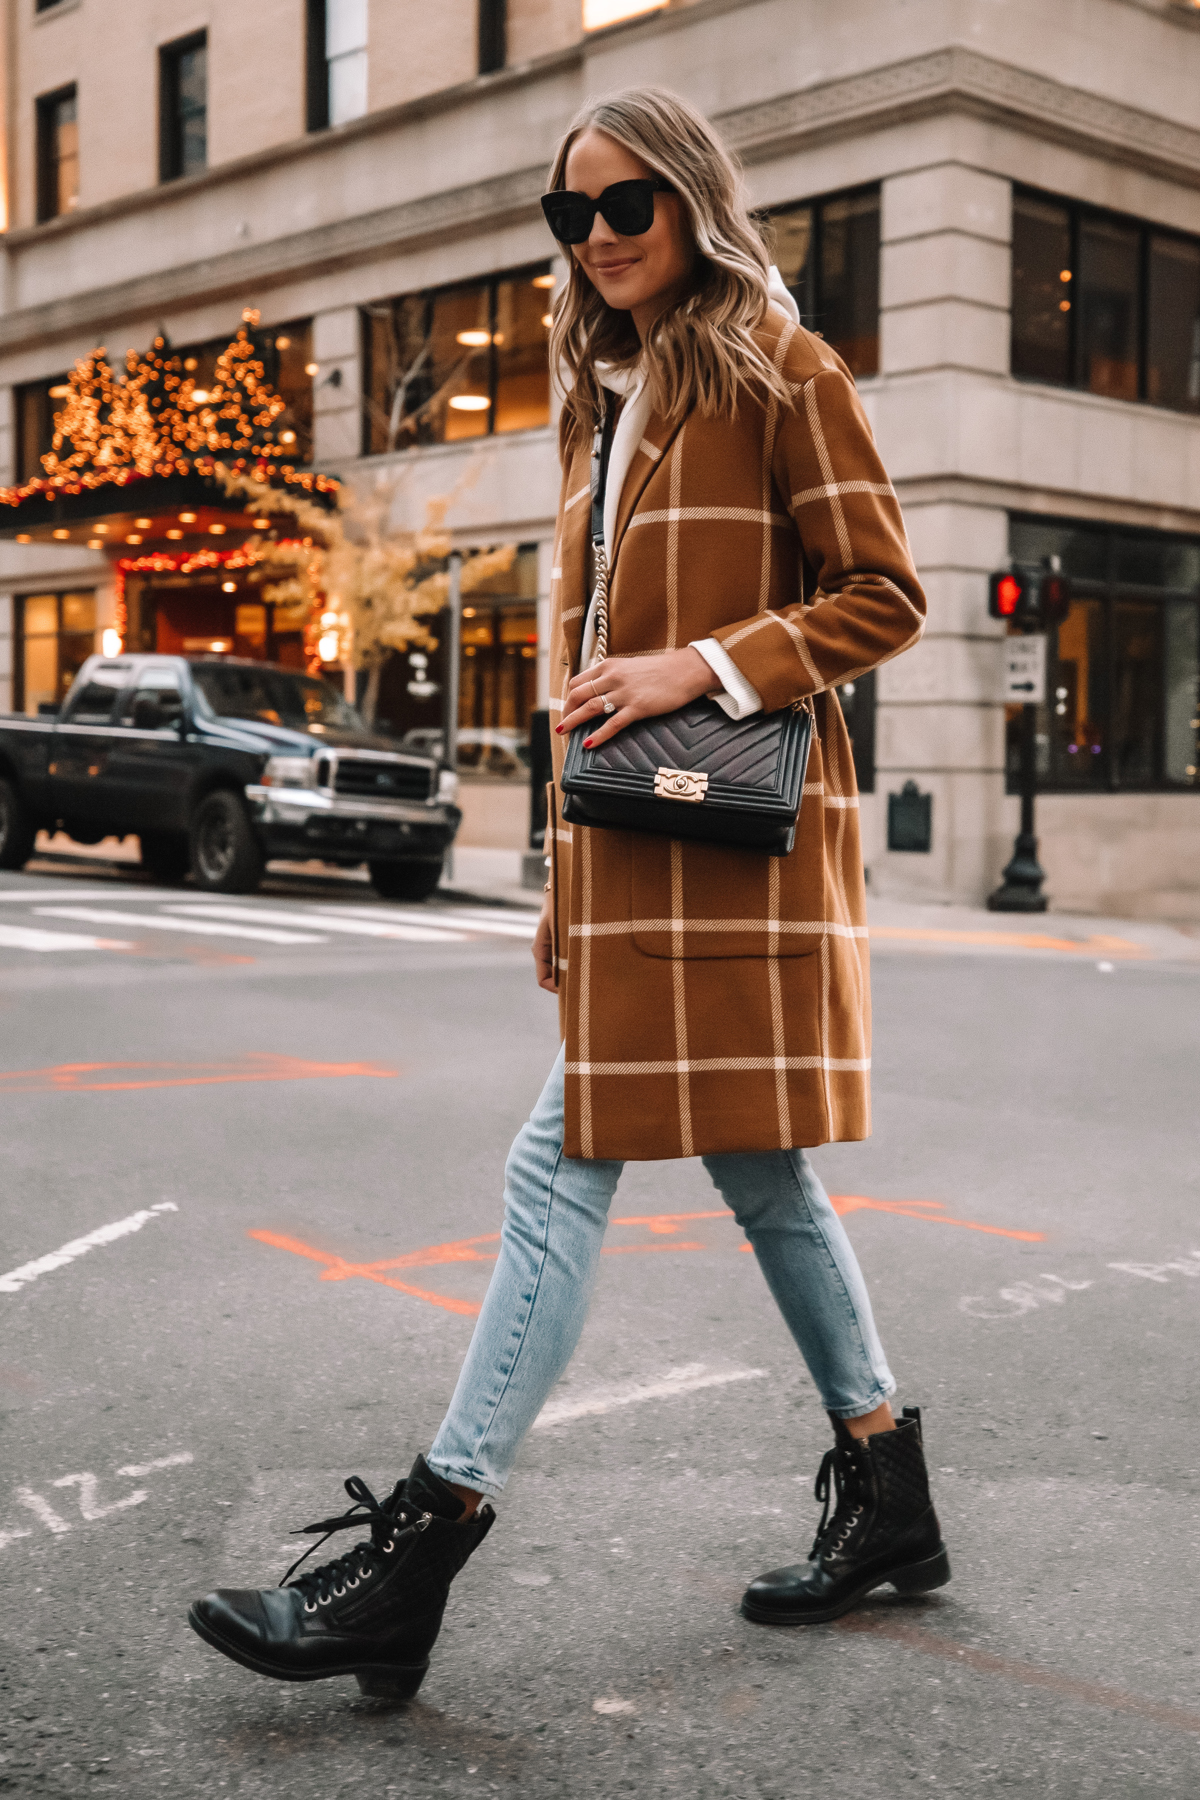 Fashion Jackson Madewell Camel Plaid Coat Levis Jeans Combat Boots Street Style Outfit 1